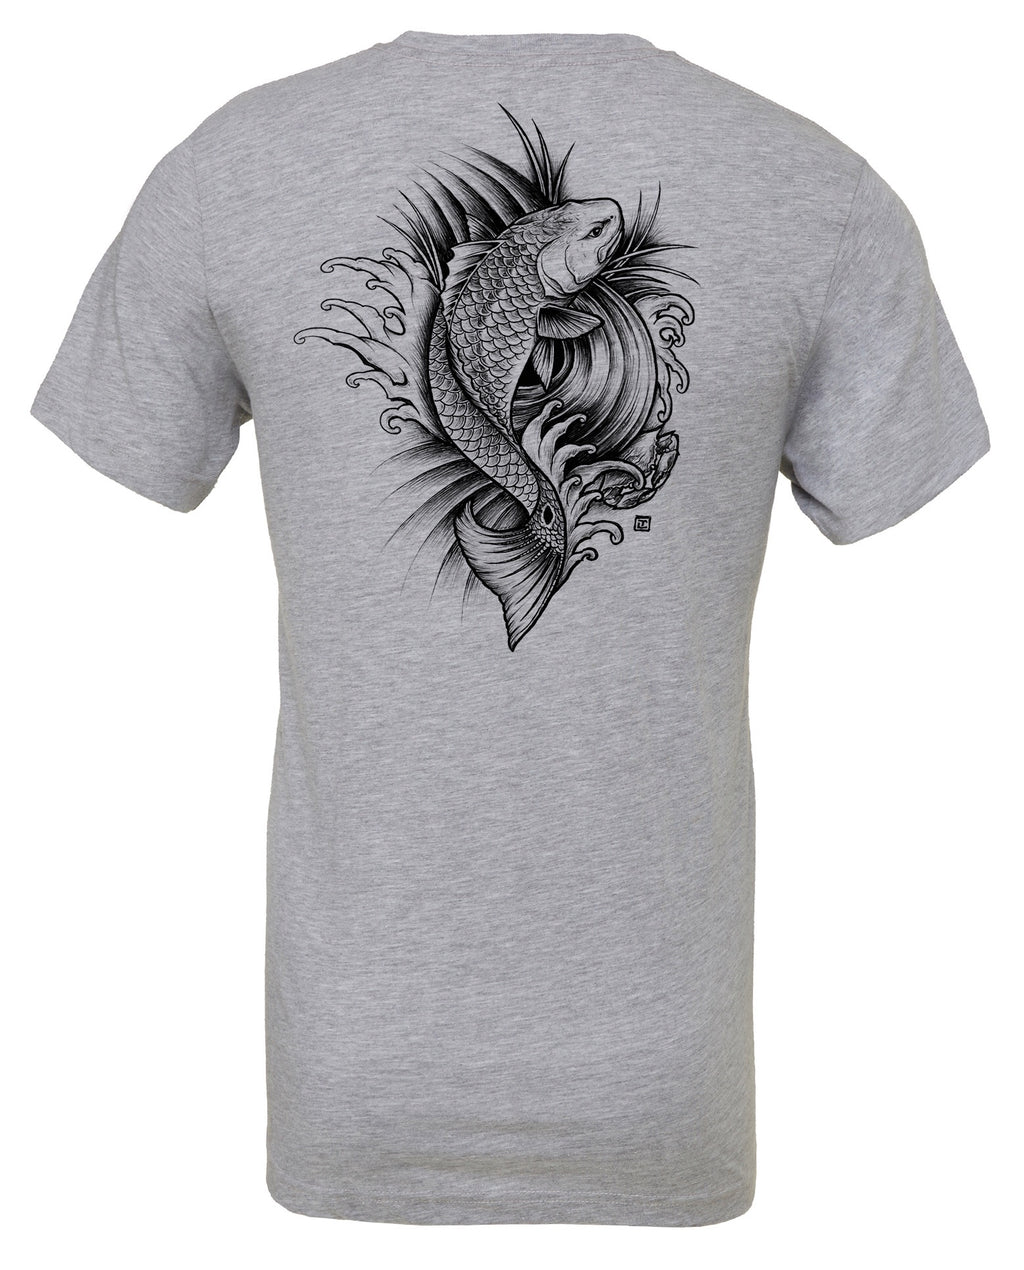 Redfish Tattoo T-Shirt